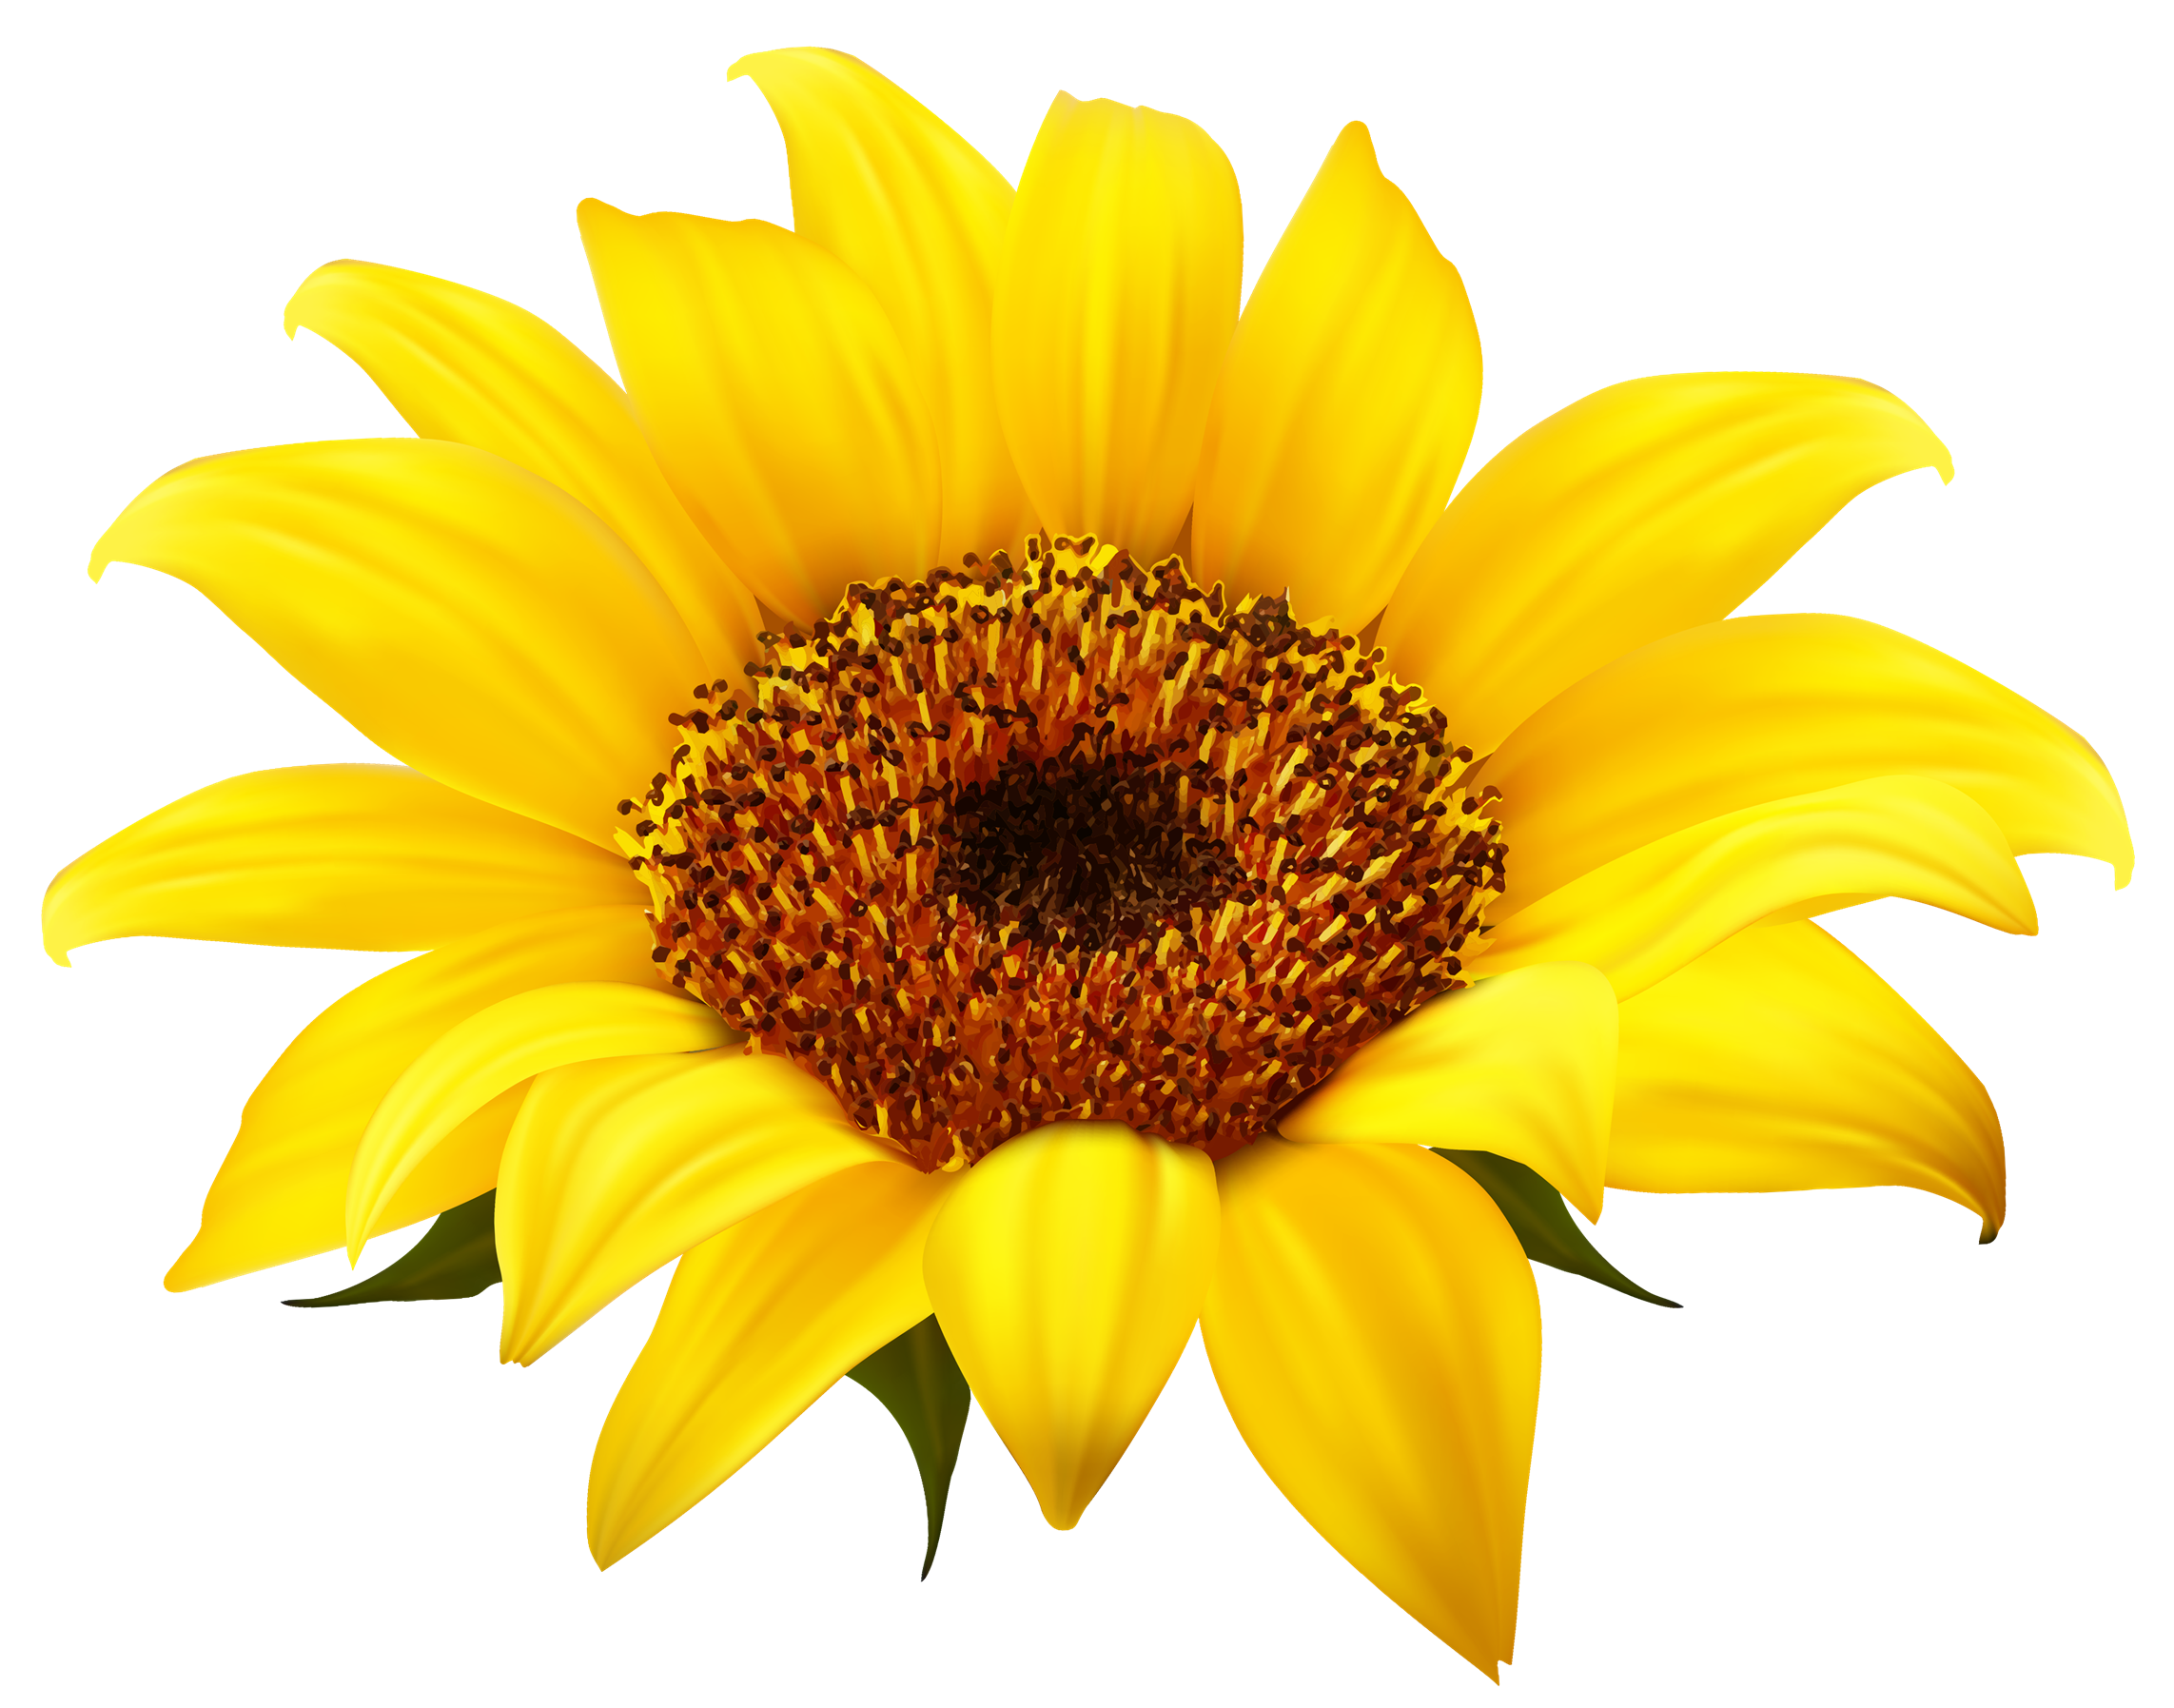 Sun flower png. Sunflower images transparent free